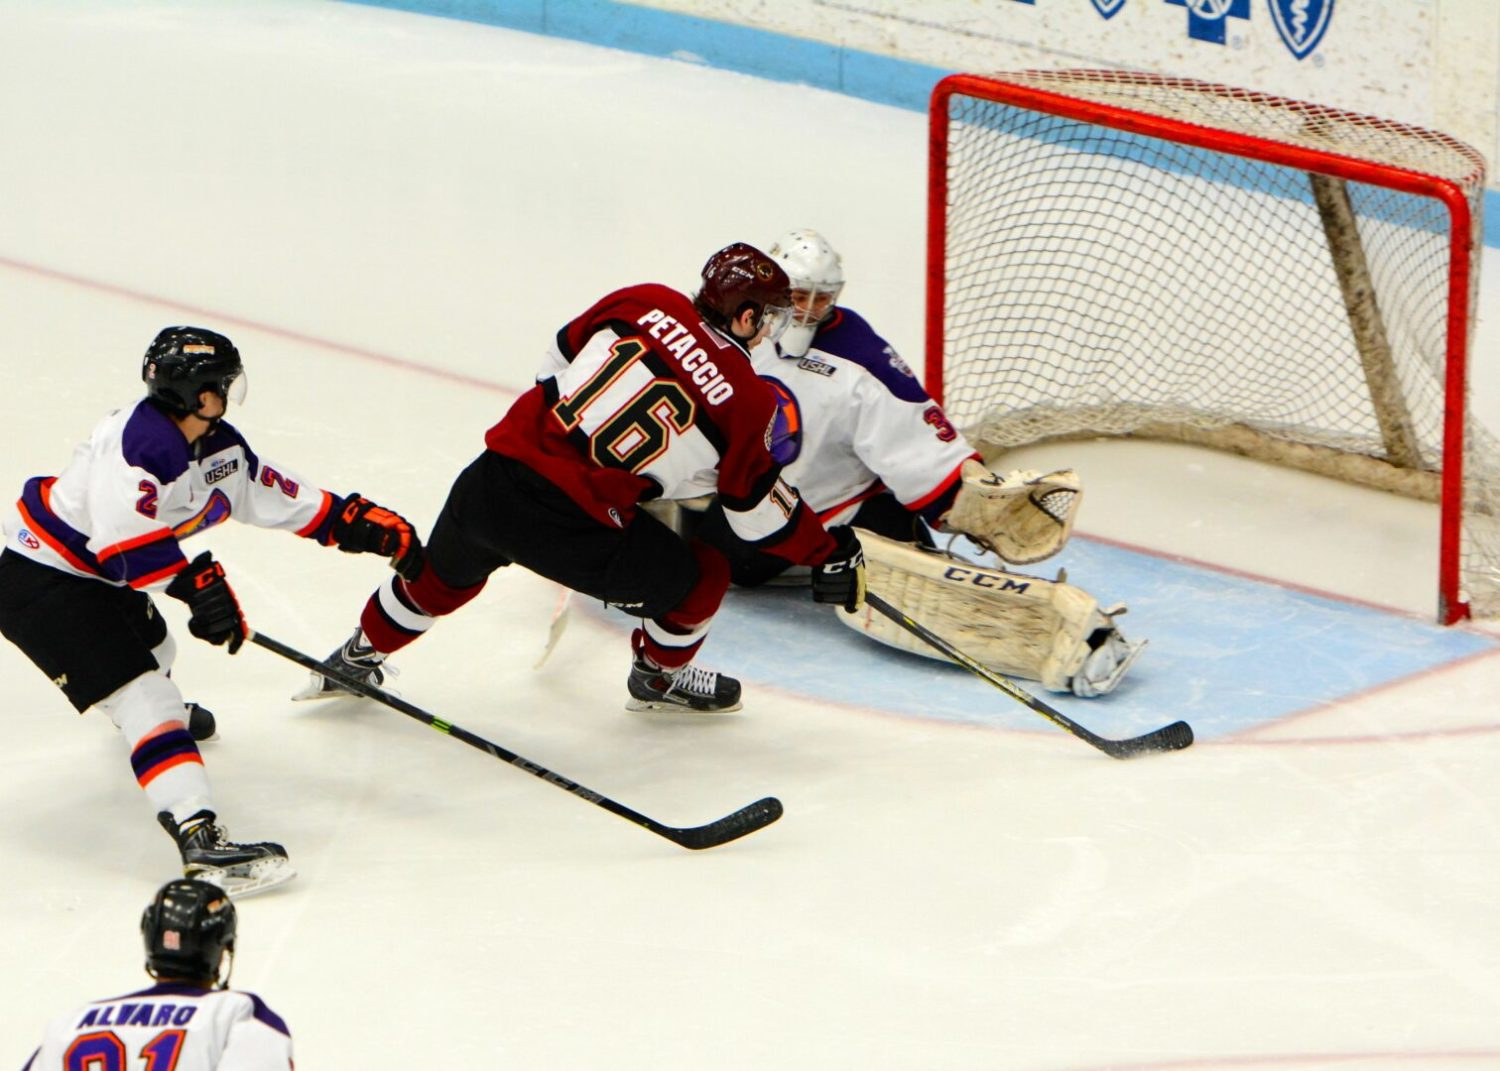 Iacopelli scores the winner in OT, giving the Lumberjacks a 5-4 win over Youngstown in their playoff opener